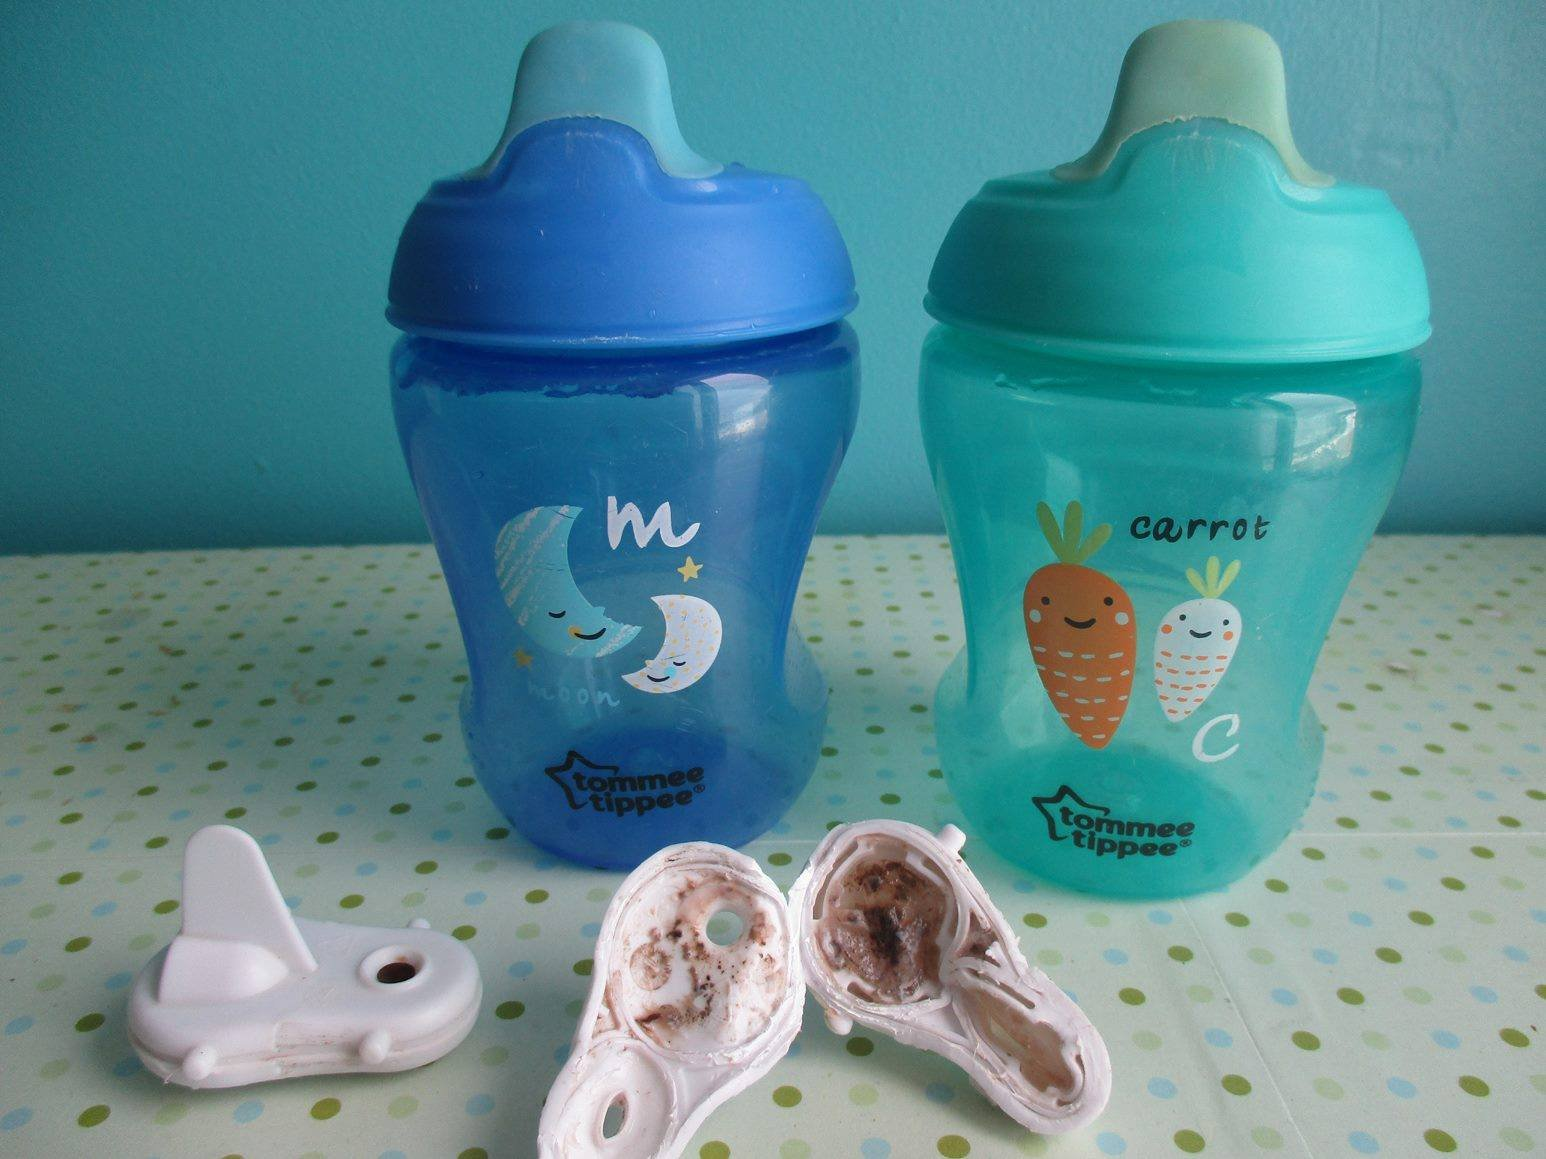 tommee tippee mold